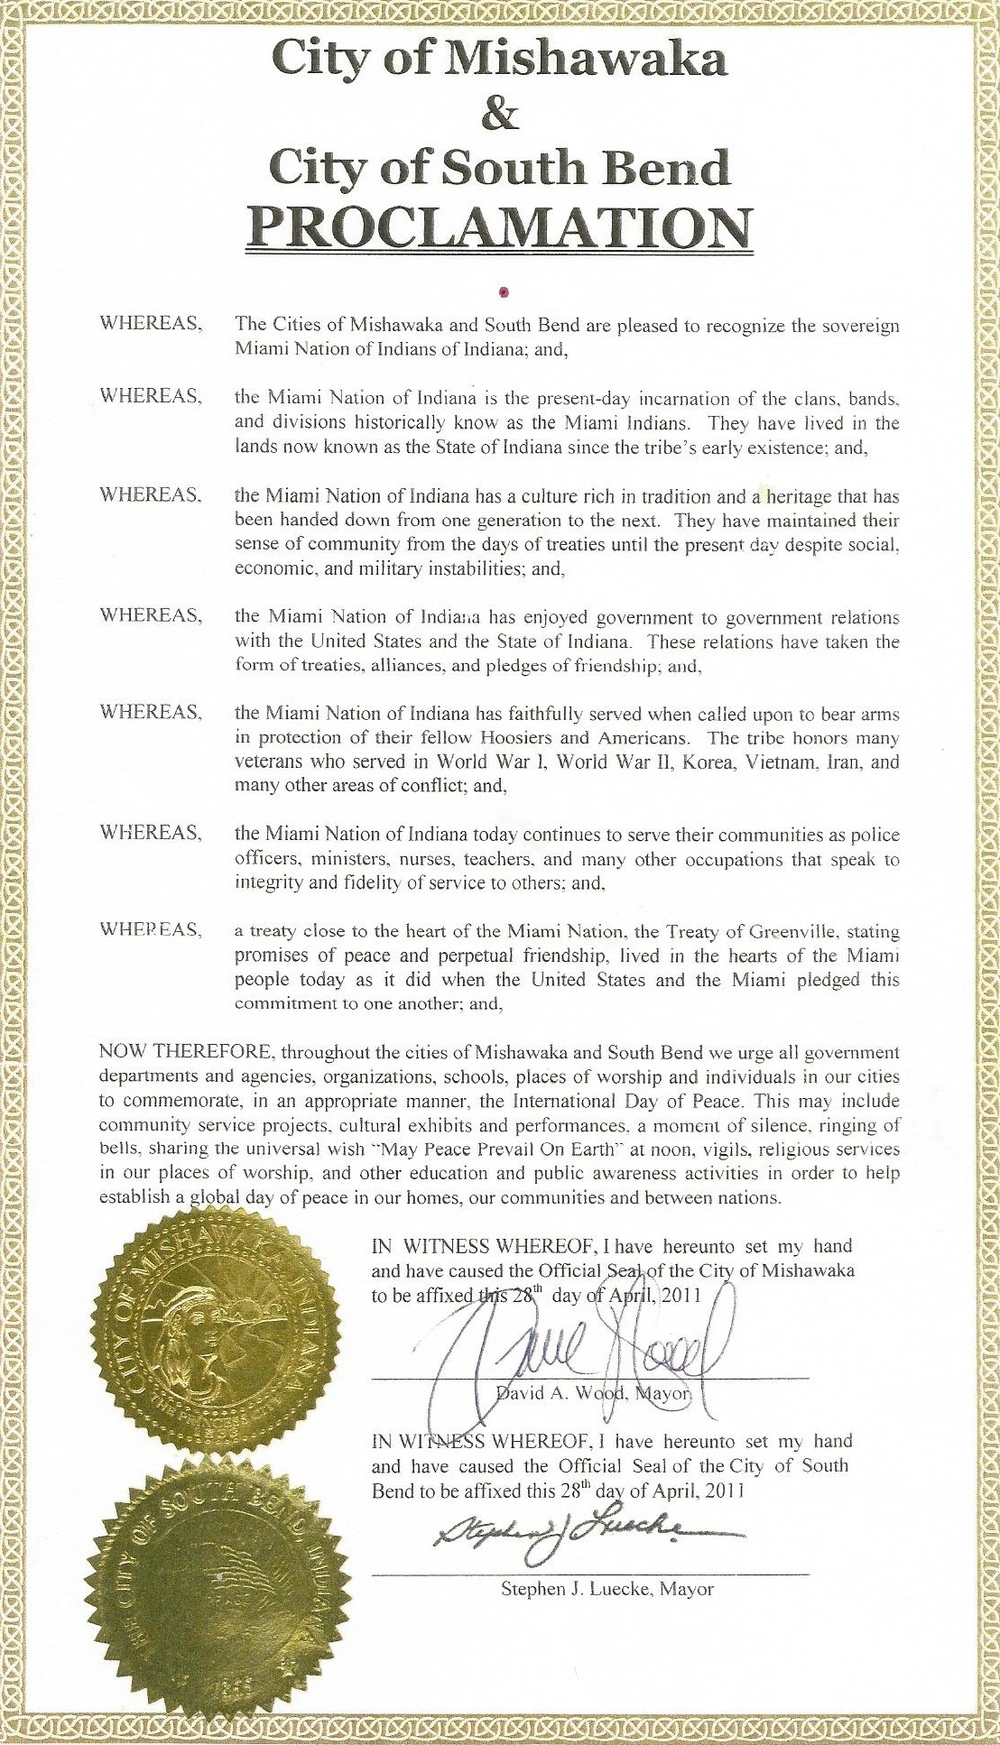 Proclamation City of Mishawaka & City of South Bend.jpg